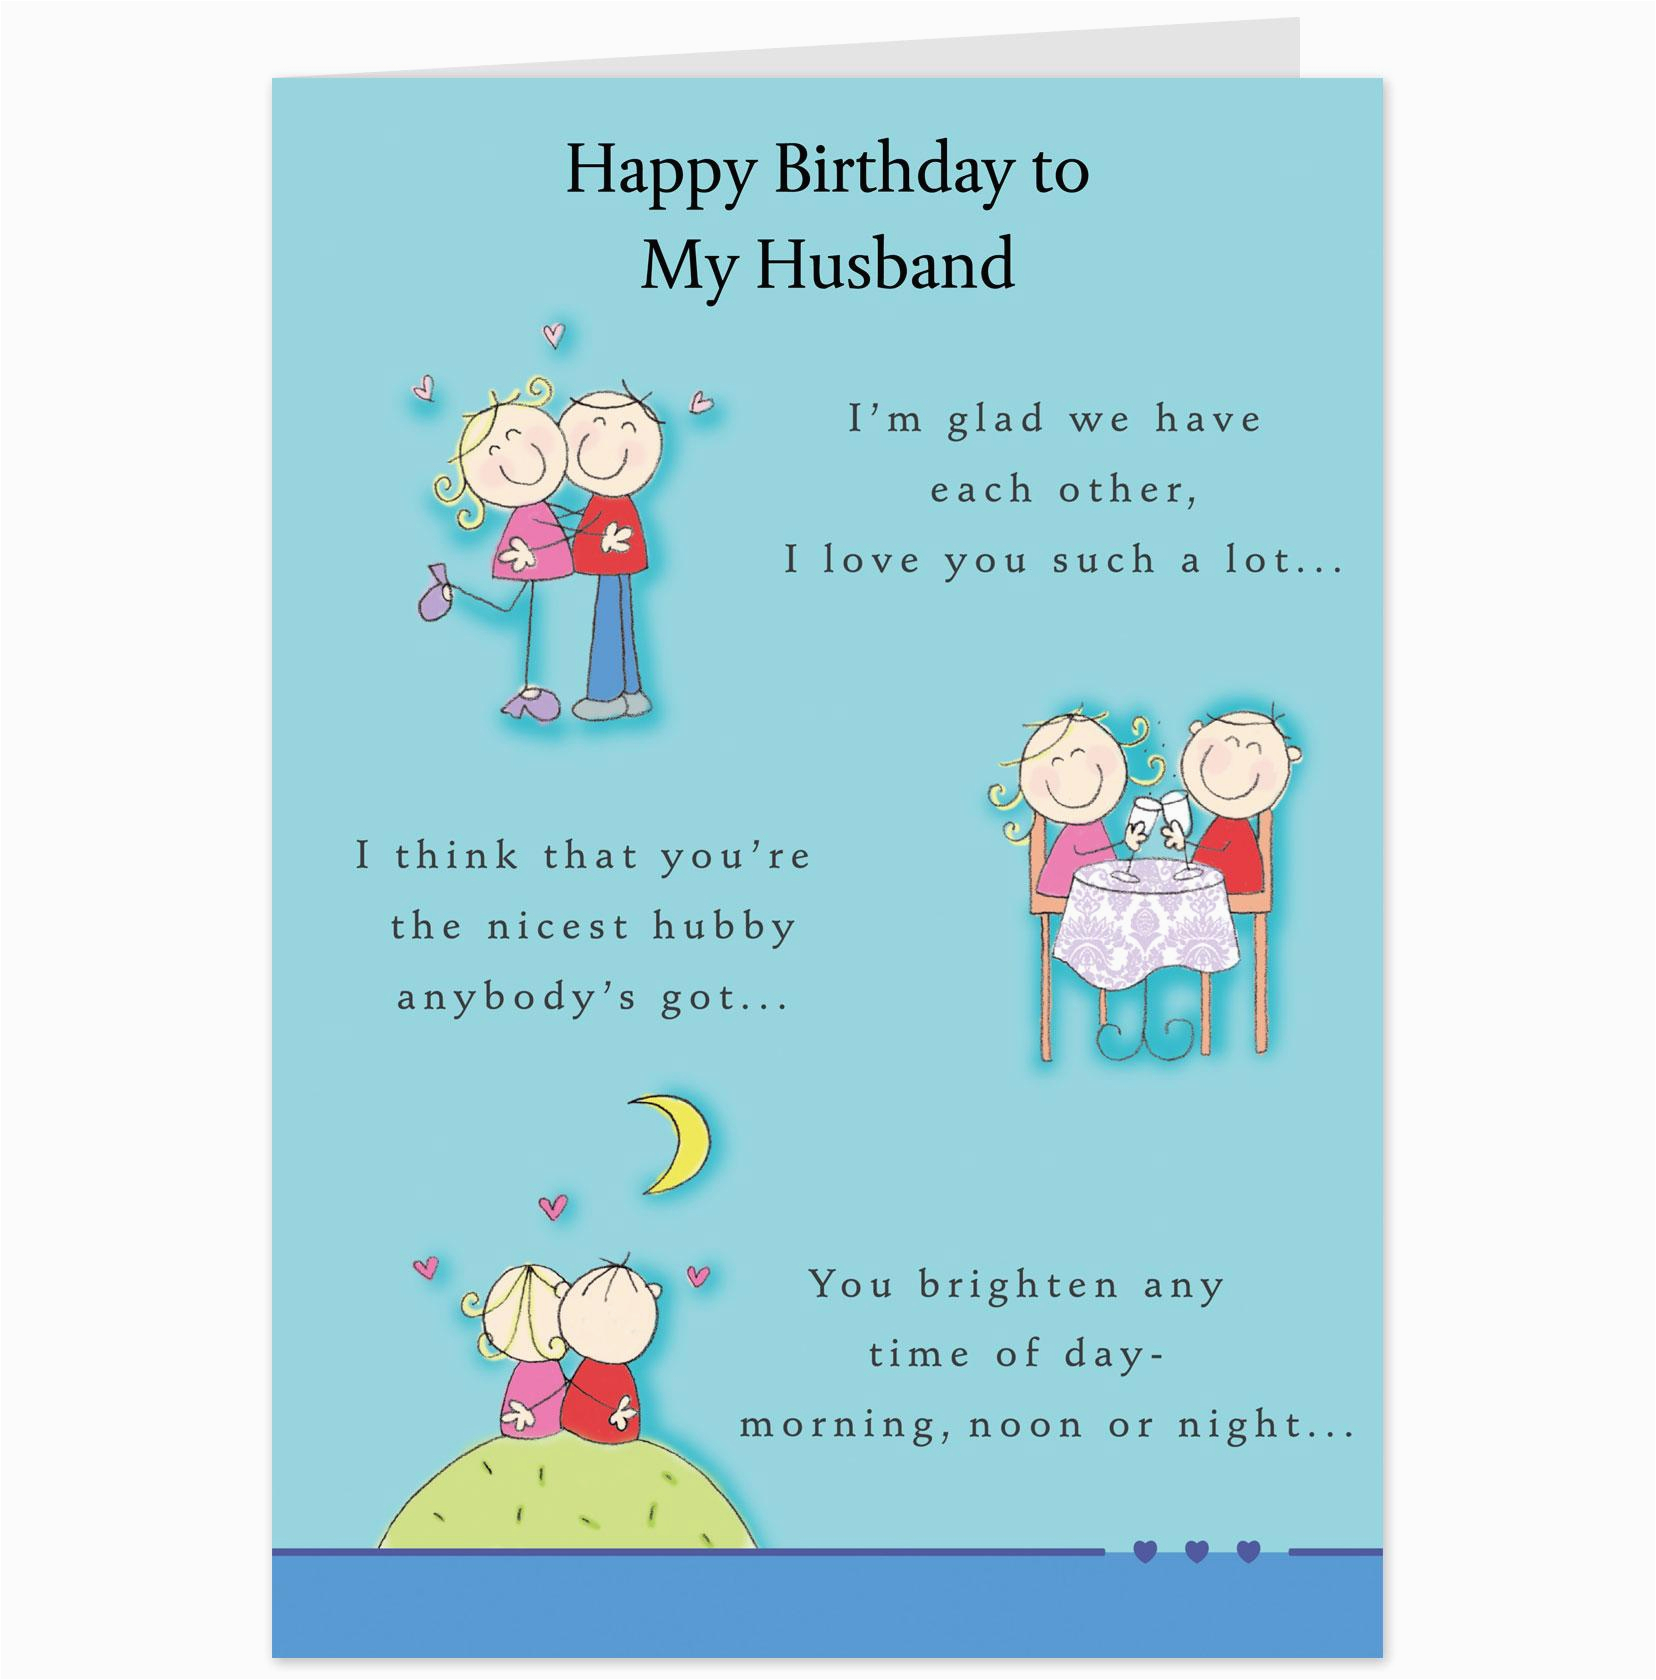 birthday card for husband intended for birthday card for